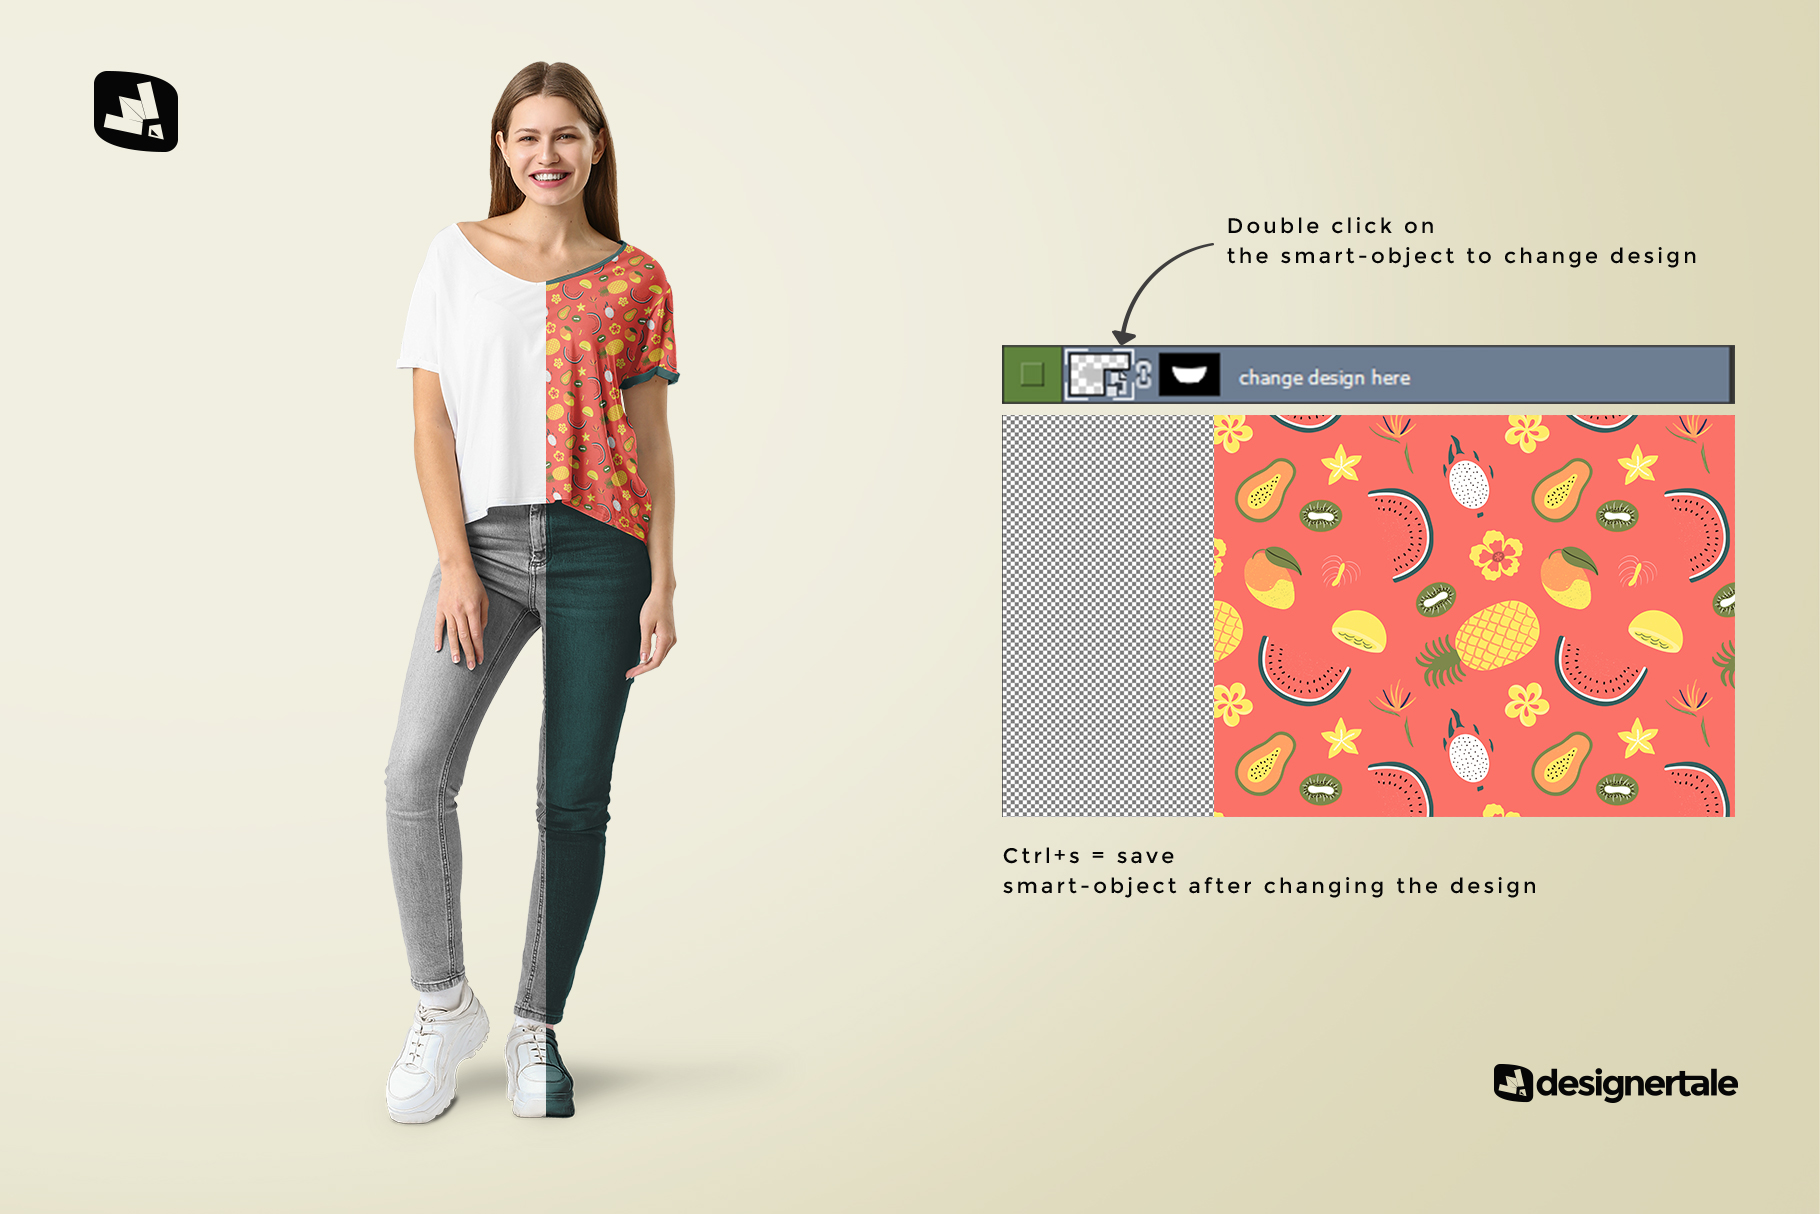 how to change design of the female everyday outfit mockup